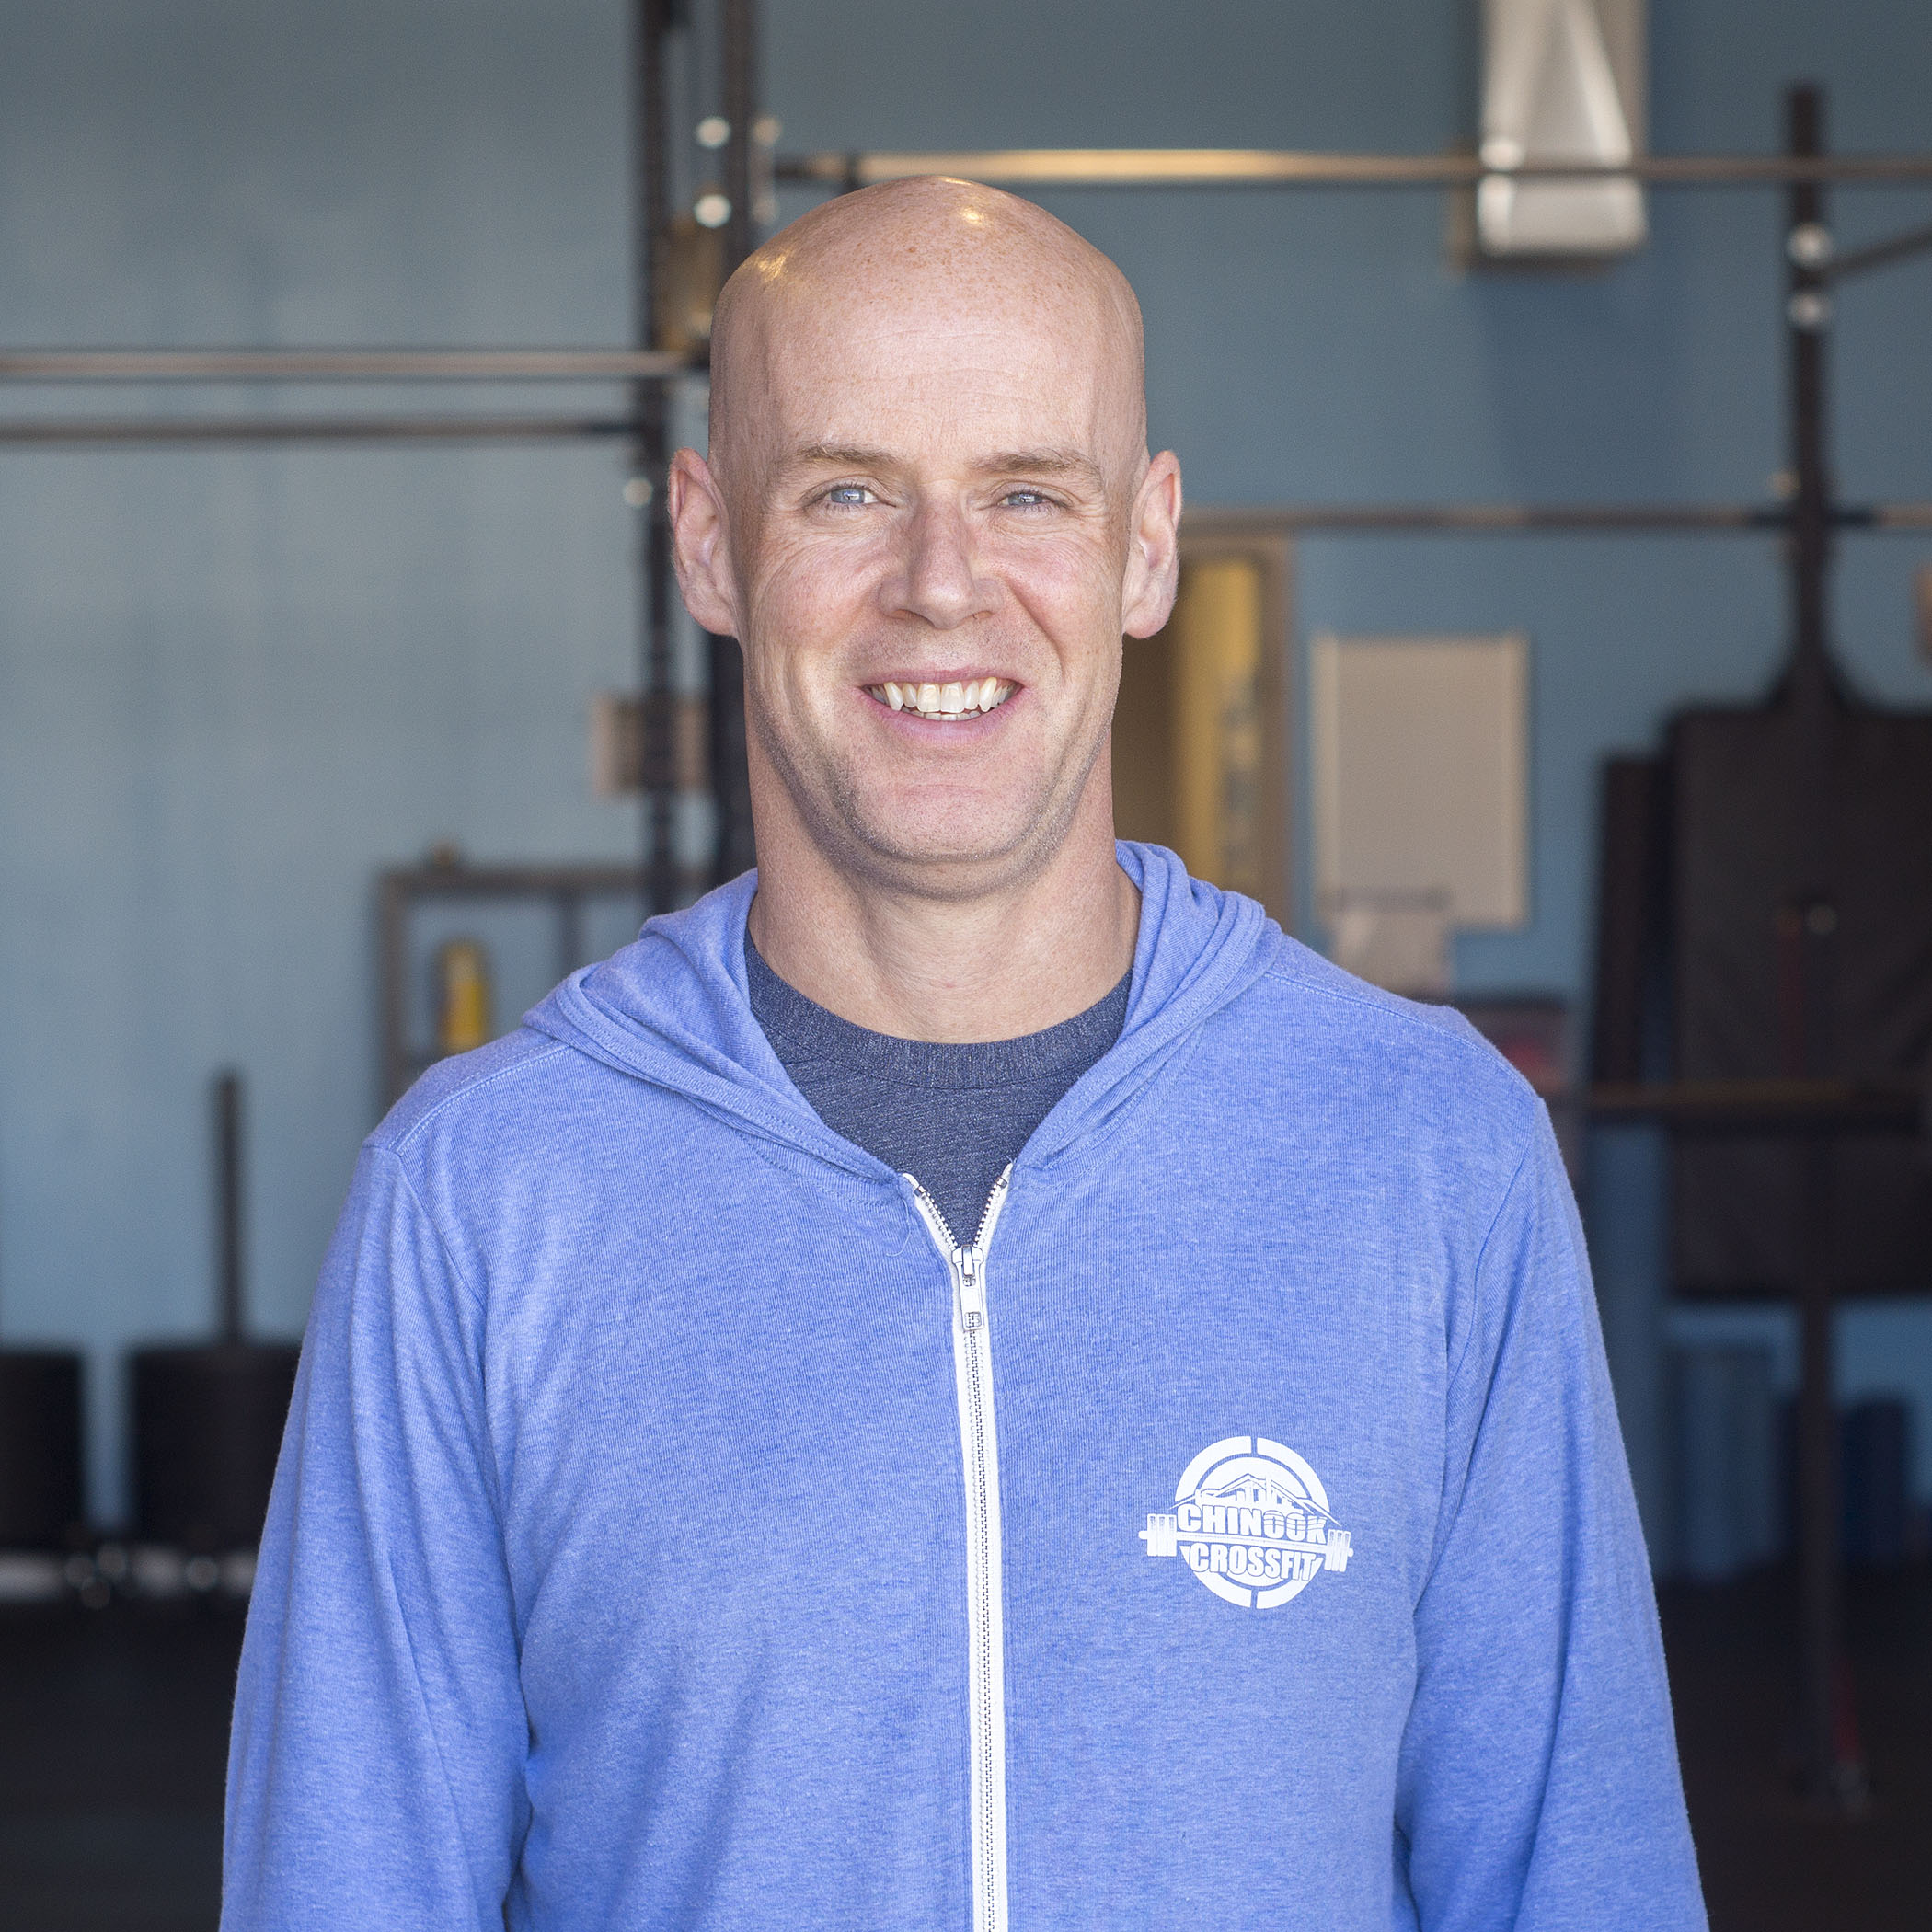 JAMES FOSTER - COACHMy CrossFit journey began four years ago when I attended my first class accompanied by my son. The original plan was to train along side him as he prepared for the upcoming hockey season. Aside from leaving the gym exhausted and slightly confused from the kipping pull ups the class was working on, I was hooked. My workout regime prior to CrossFit included weight training, running and P90X. While these activities were helpful, none of them could rival the CrossFit experience. I am in my mid-fourties and in the best shape of my life, 5 pounds lighter than I was at the age of 18 when I was heading off to training camp. I am a Physical Therapist and Advanced Level 1 Coaching Candidate (Hockey) with over twenty-five years of experience training, coaching, teaching and rehabilitating athletes. I spent two year as an Assistant Coach with the University of Lethbridge Pronghorns Mens' Varsity Hockey Team before returning to Calgary and coaching in the Blackfoot Minor Hockey Association for ten seasons. The metabolic conditioning (METCON) WODS are my favourite CrossFit activities.CrossFit Level 1 Trainer